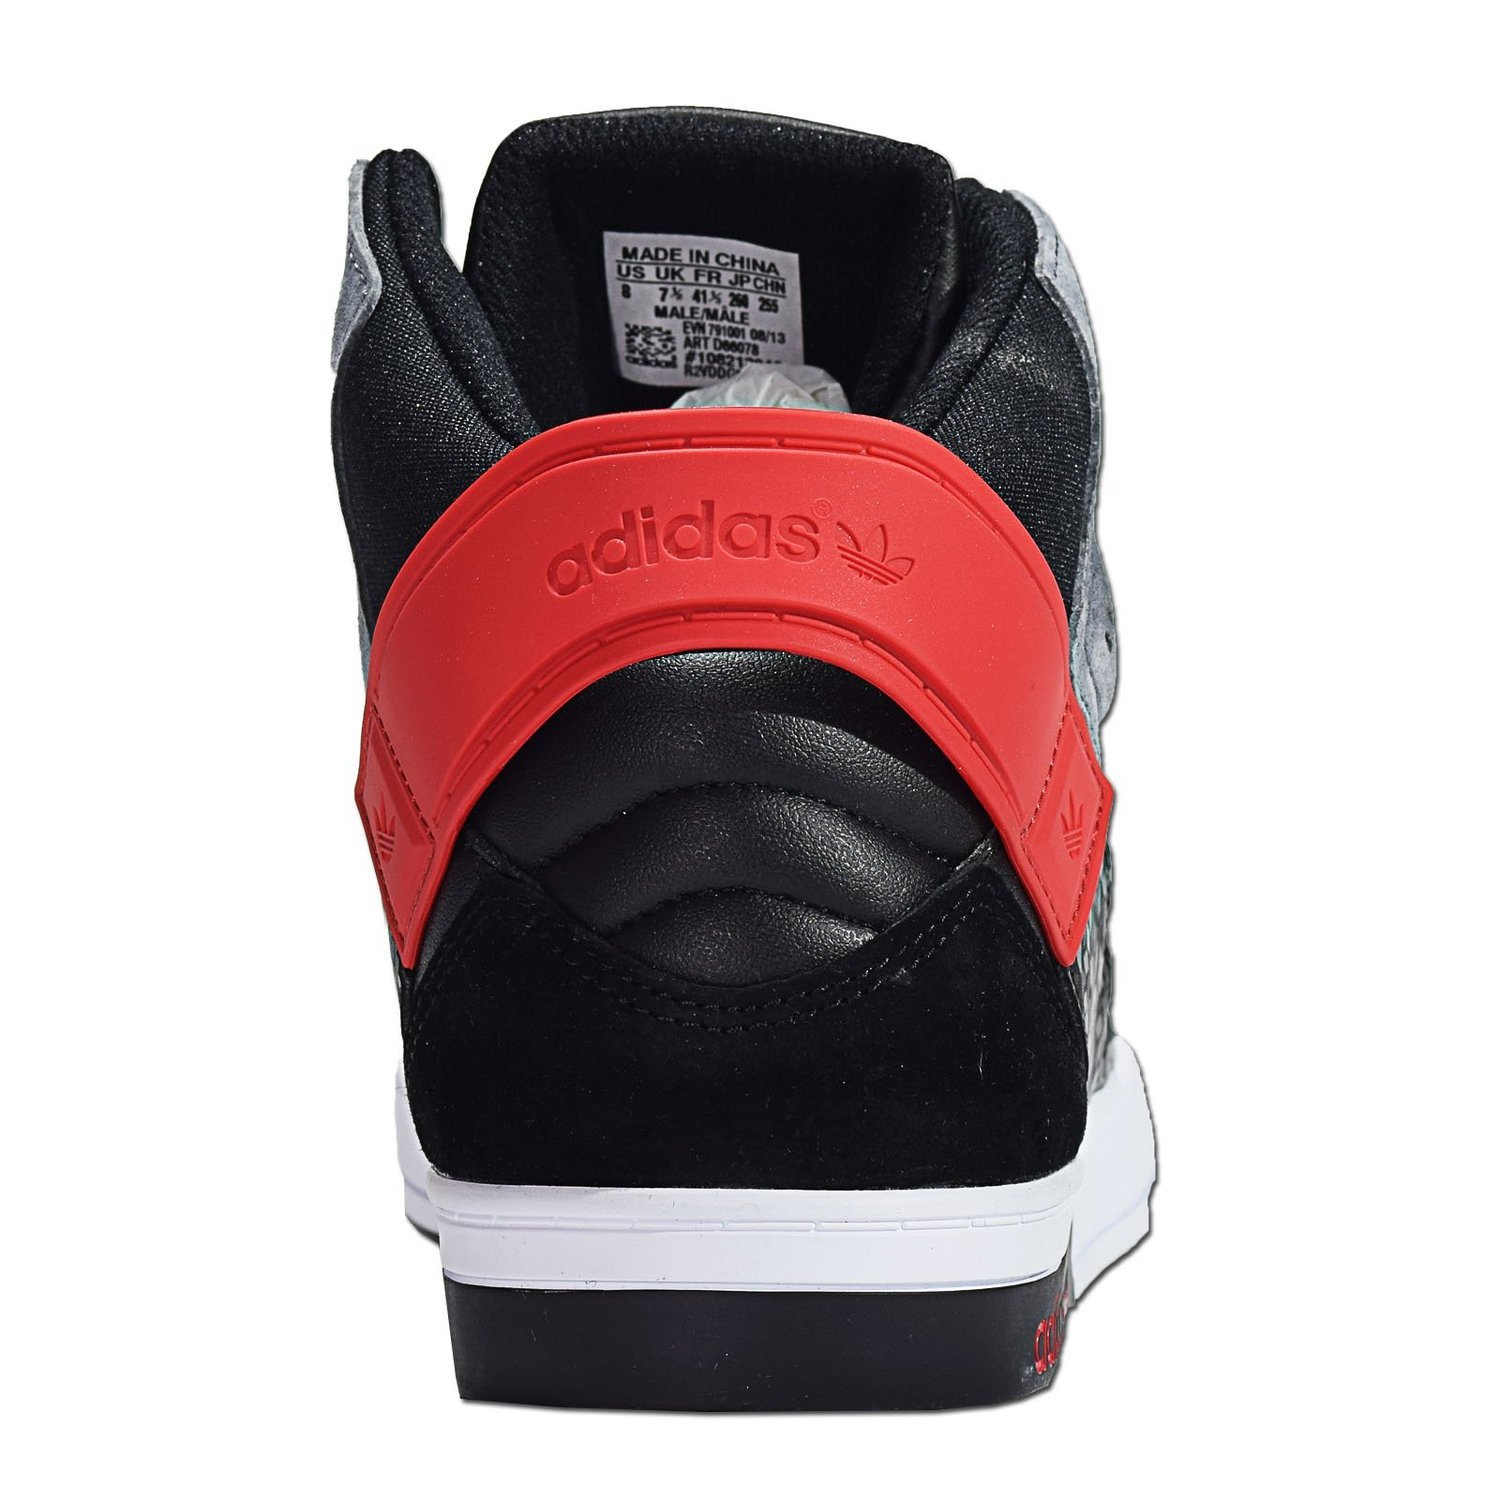 adidas hard court defender